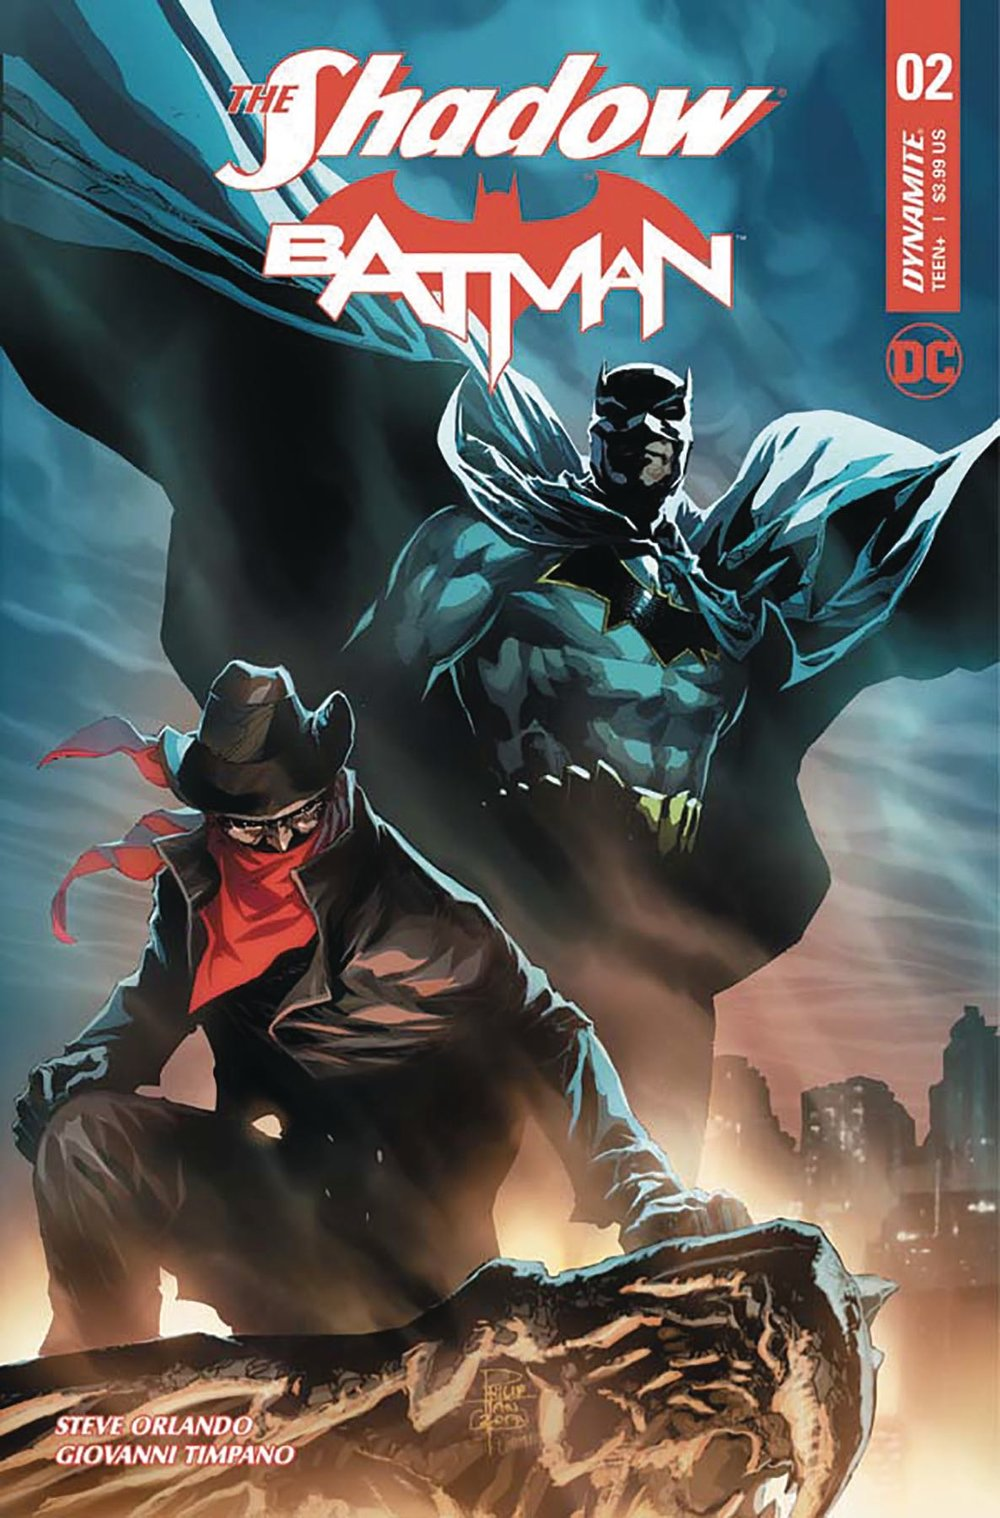 Episode 9 Variant of the Week! - (Dynamite) The Shadow / Batman #2 (Tan Variant)Cover by Philip TanWritten by Steve OrlandoIllustrated by Giovanni TimpanoDid the Content Match the Drapes? - Yes